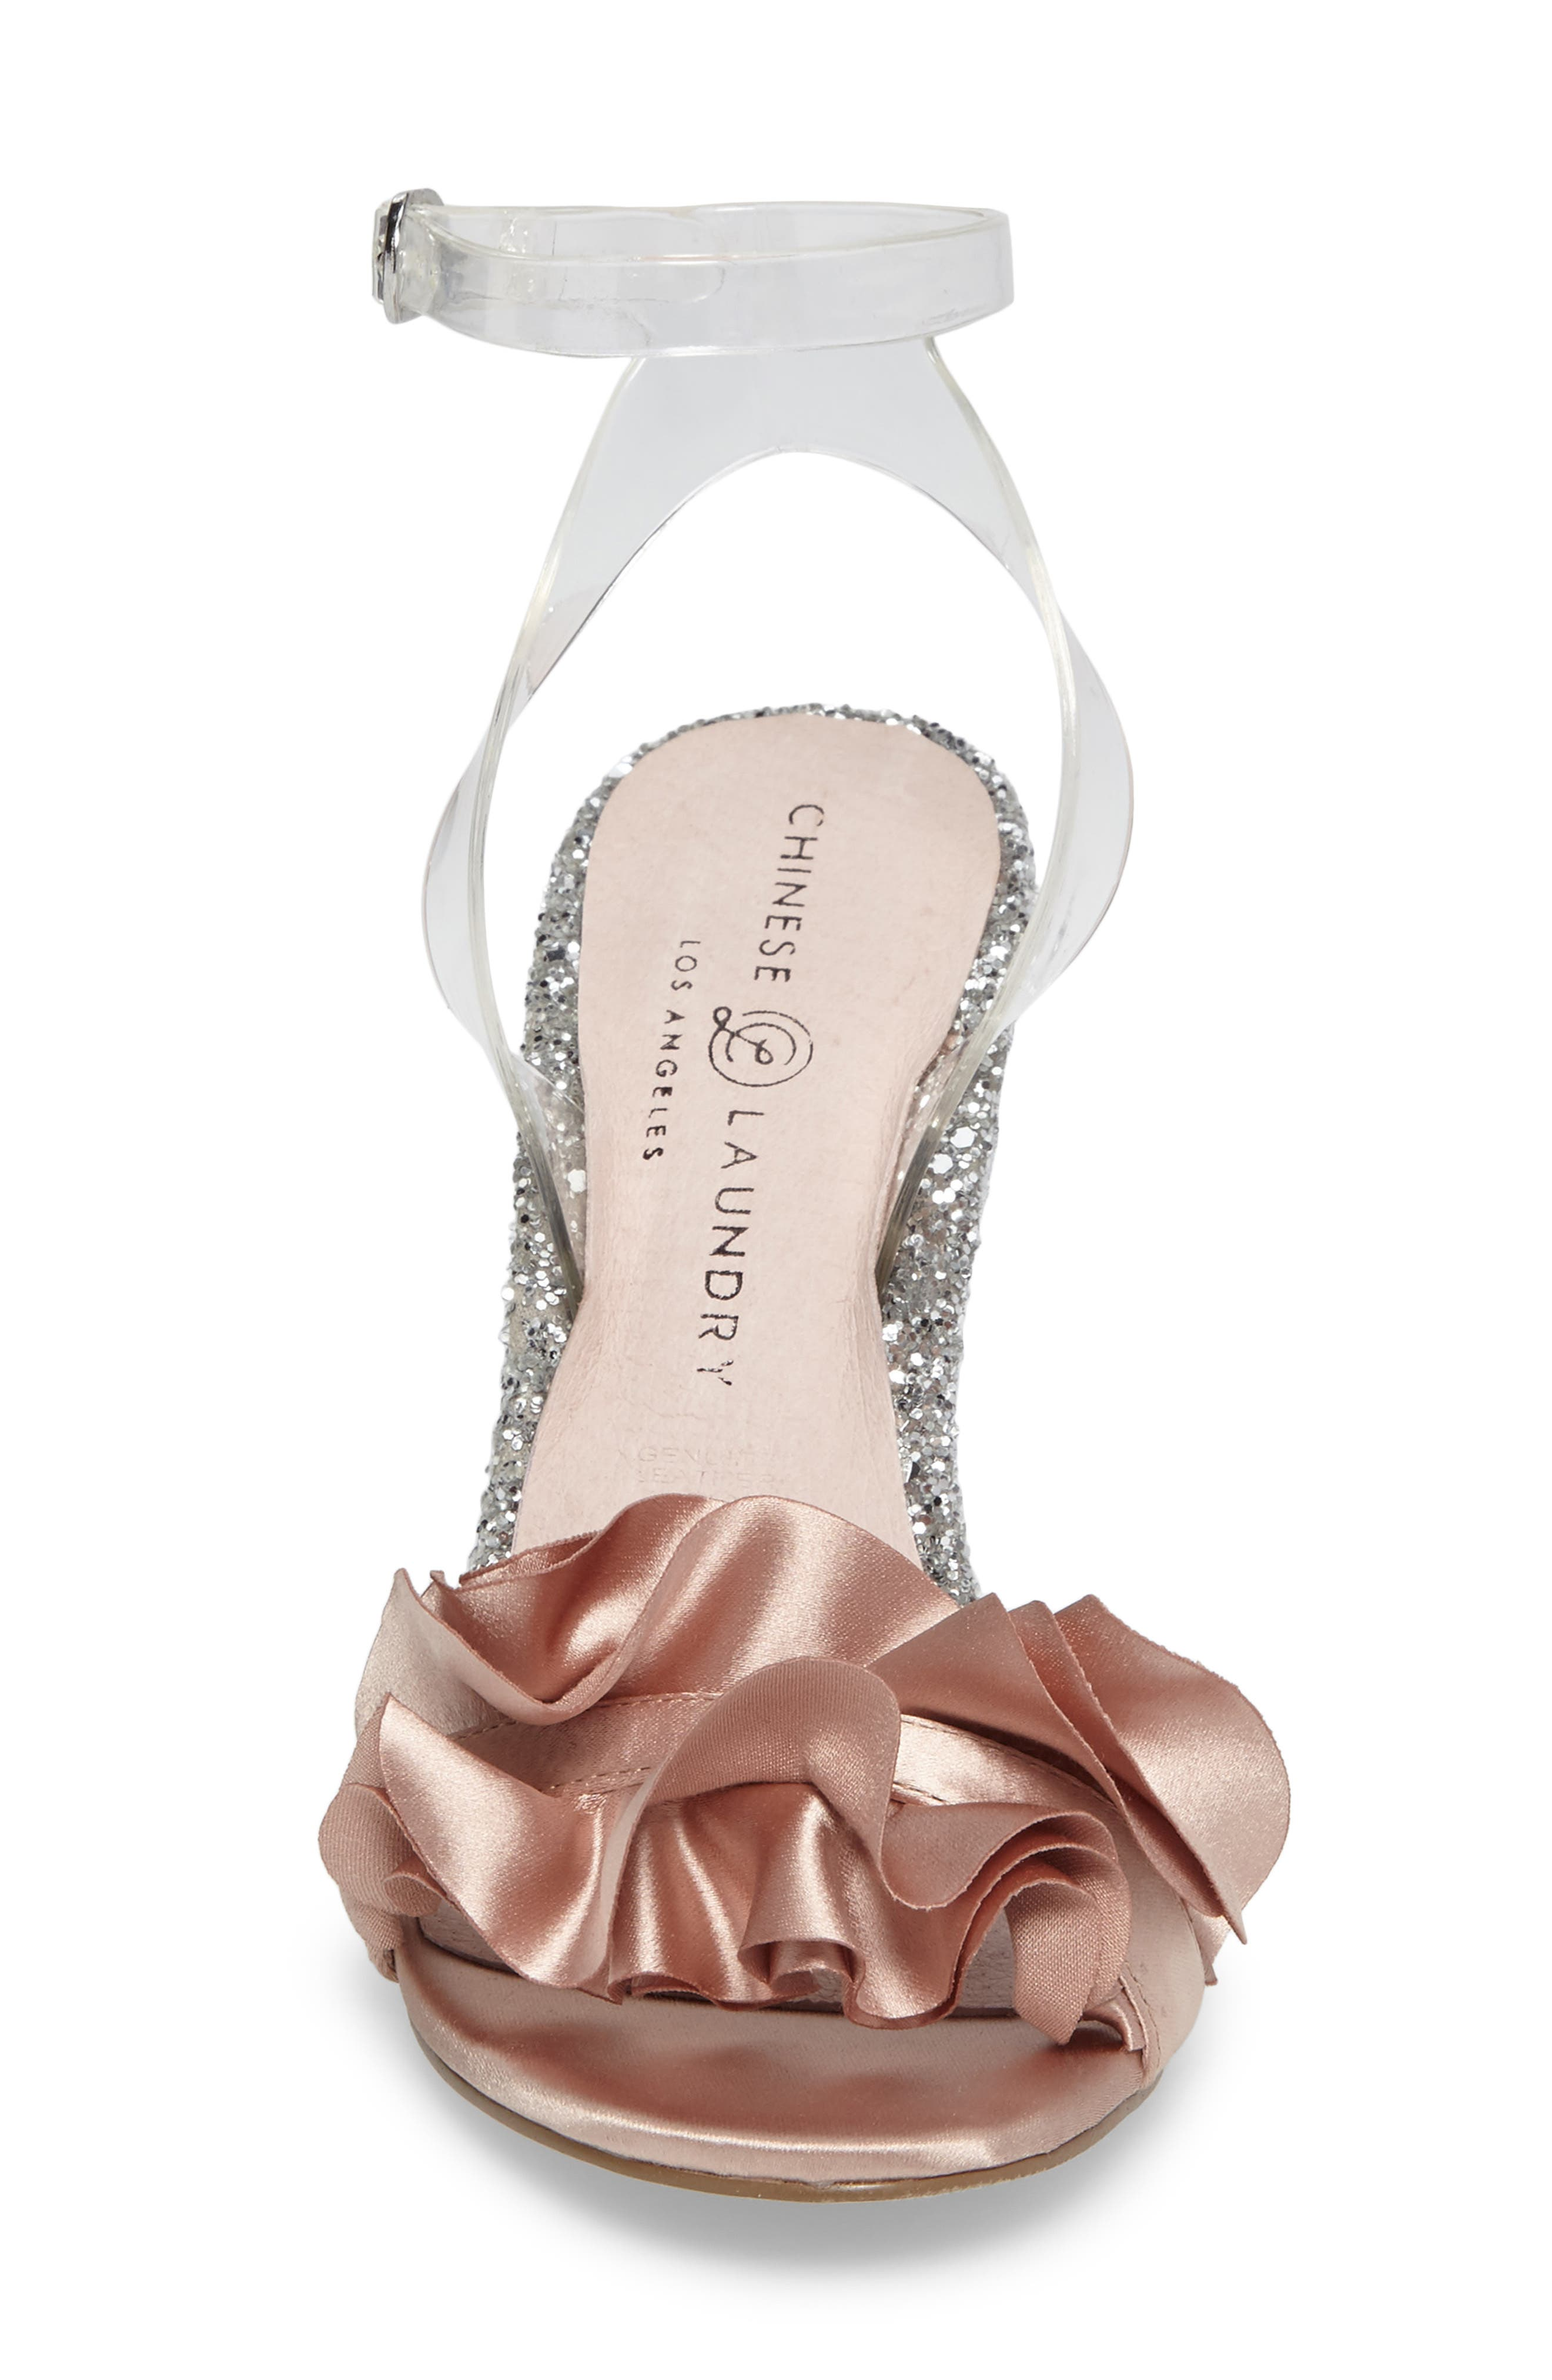 Janey Ruffled Sandal,                             Alternate thumbnail 4, color,                             Nude/ Clear